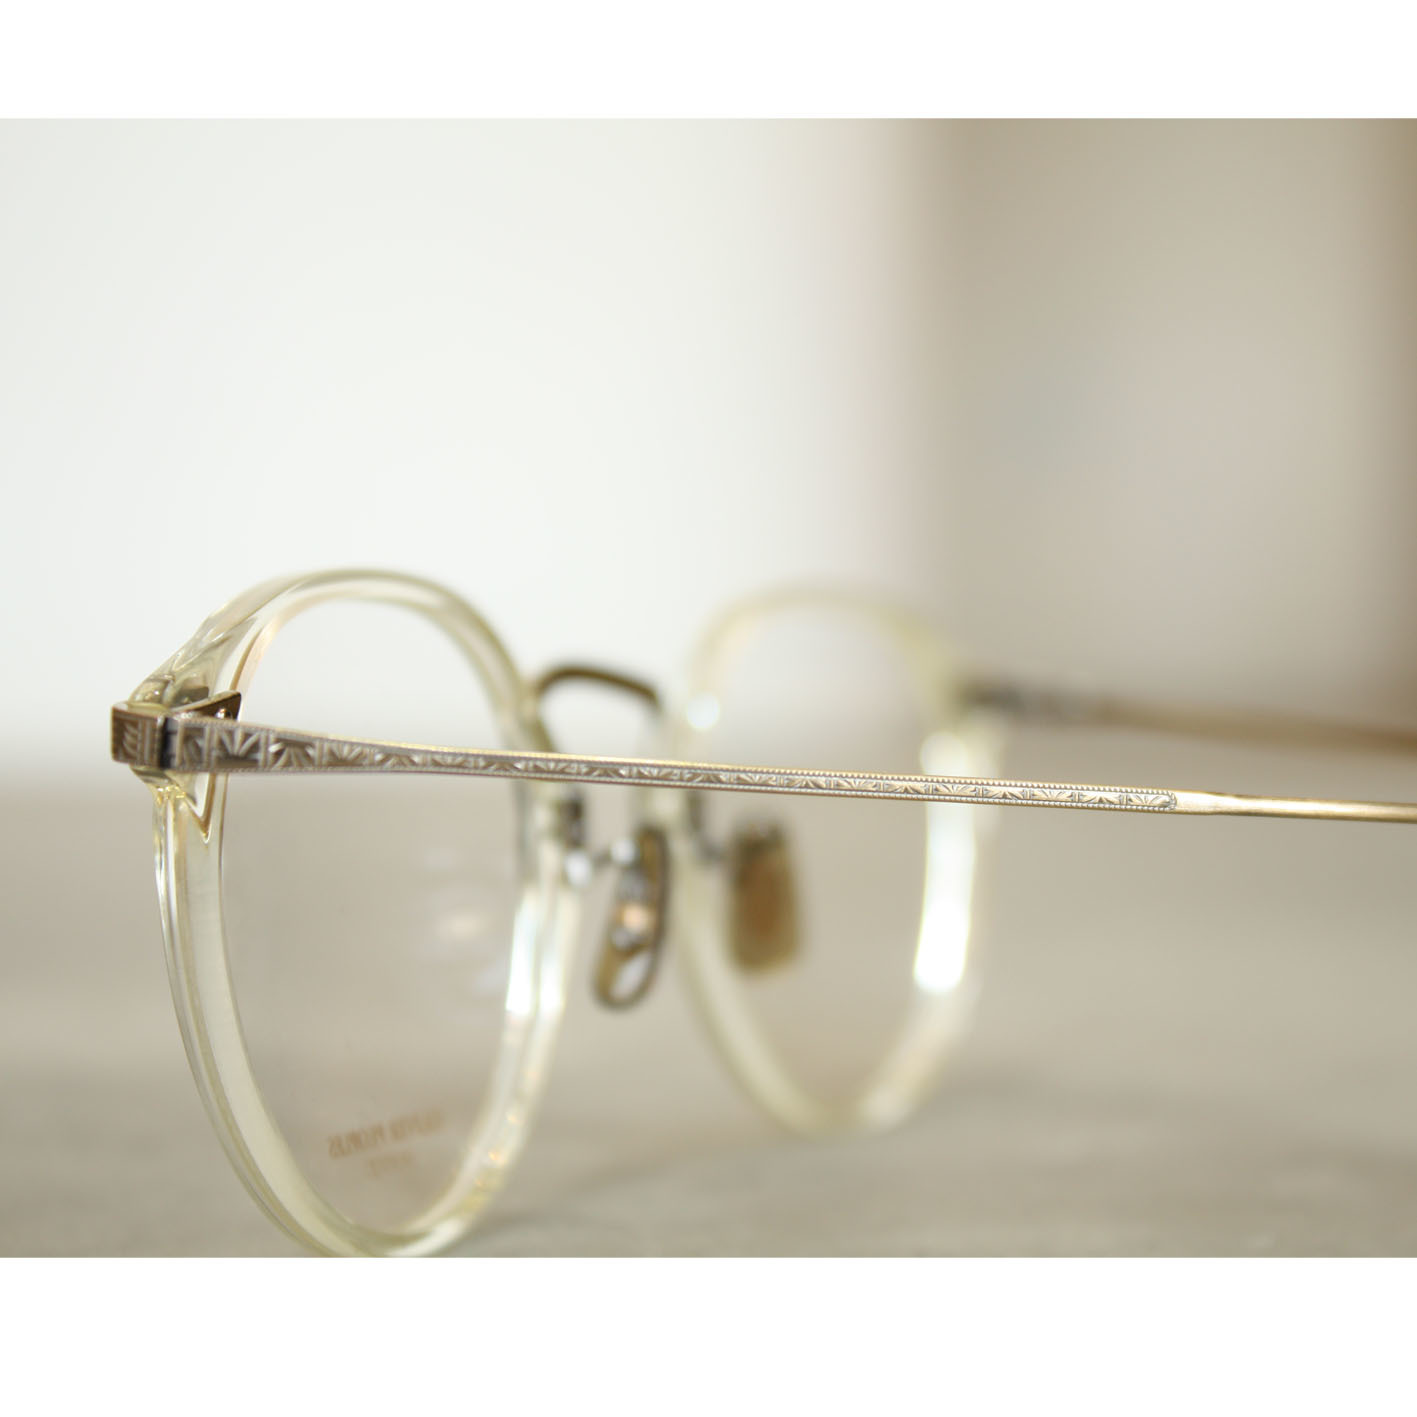 OLIVER PEOPLES 2016 NEW ARRIVAL_f0208675_16271791.jpg